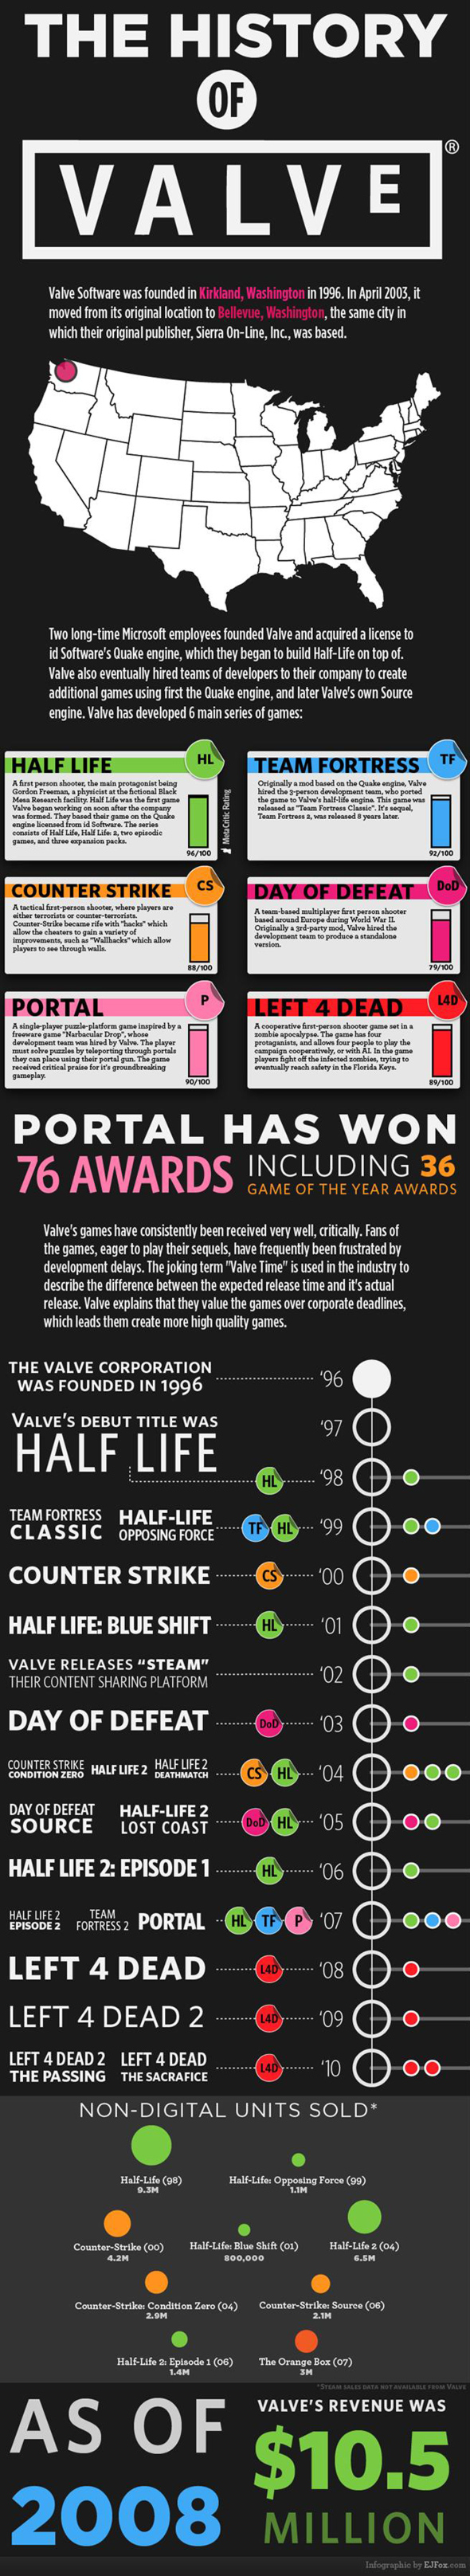 Valve game history infographic